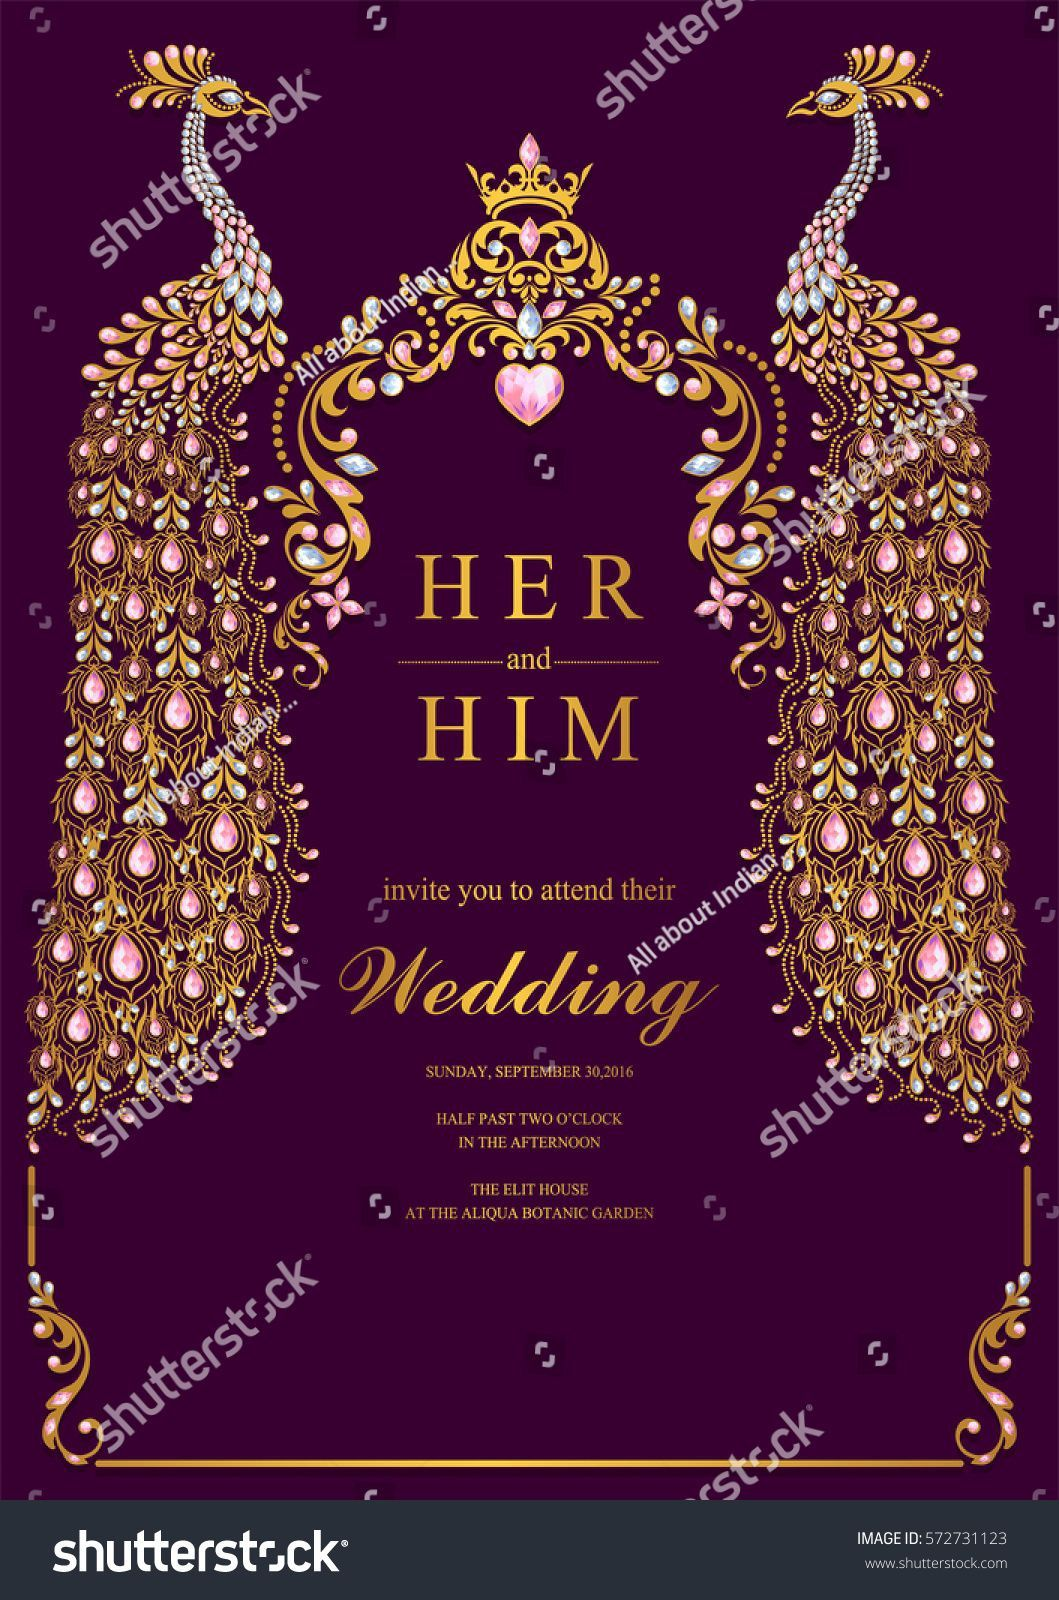 004 Unbelievable Free Online Indian Wedding Invitation Card Template Photo  TemplatesFull